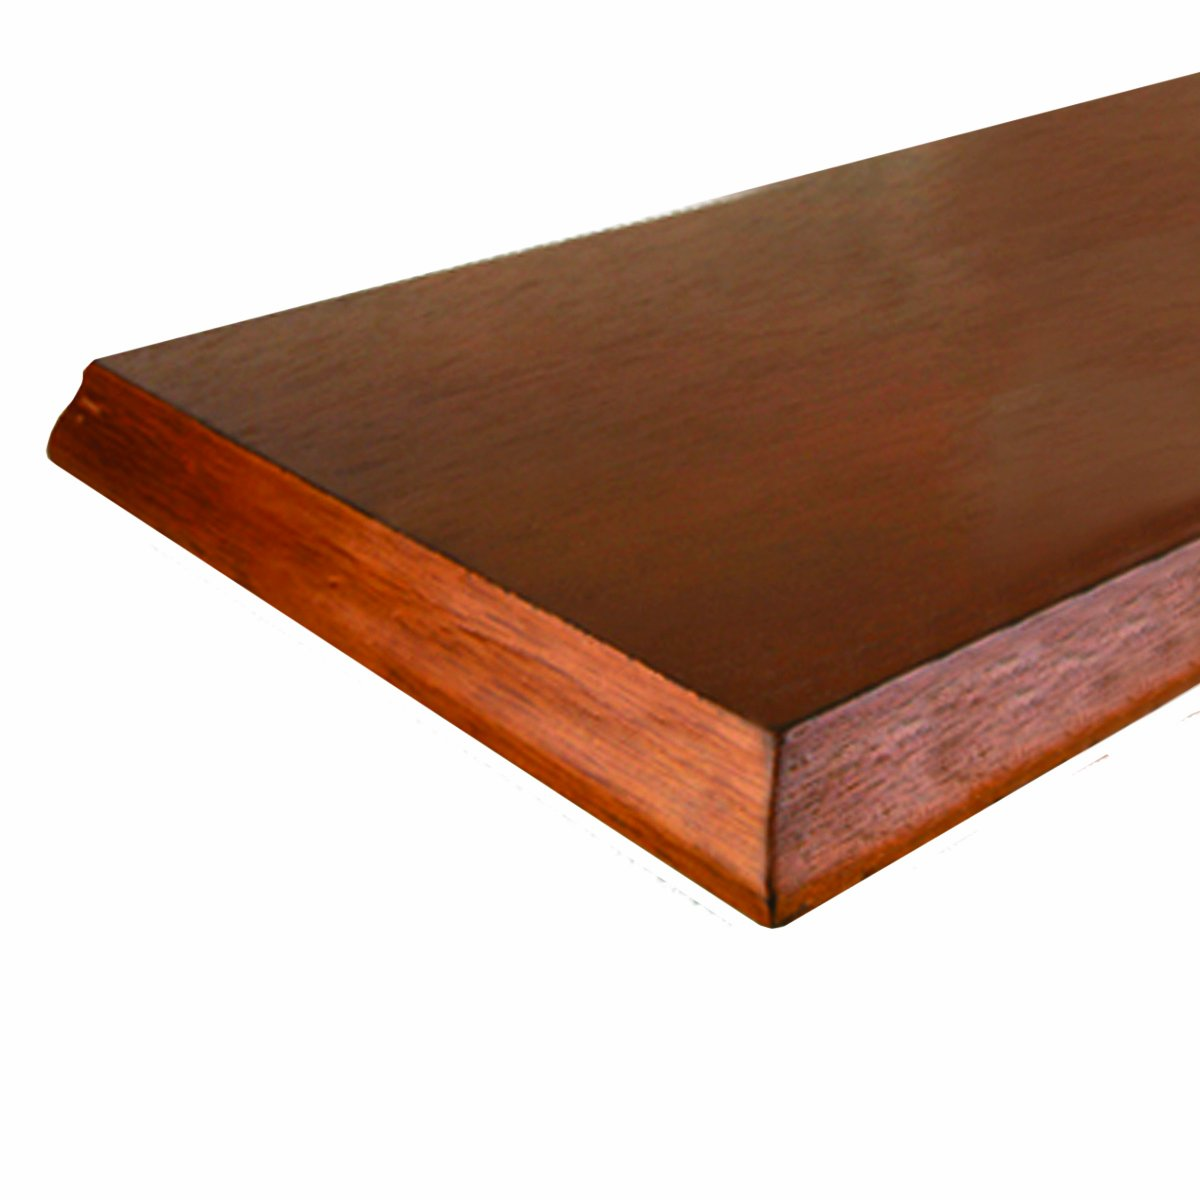 John Sterling 0137-824HNY Decorative Edge Wood Shelf, 8-Inch by 24-Inch, Honey Knape & Vogt